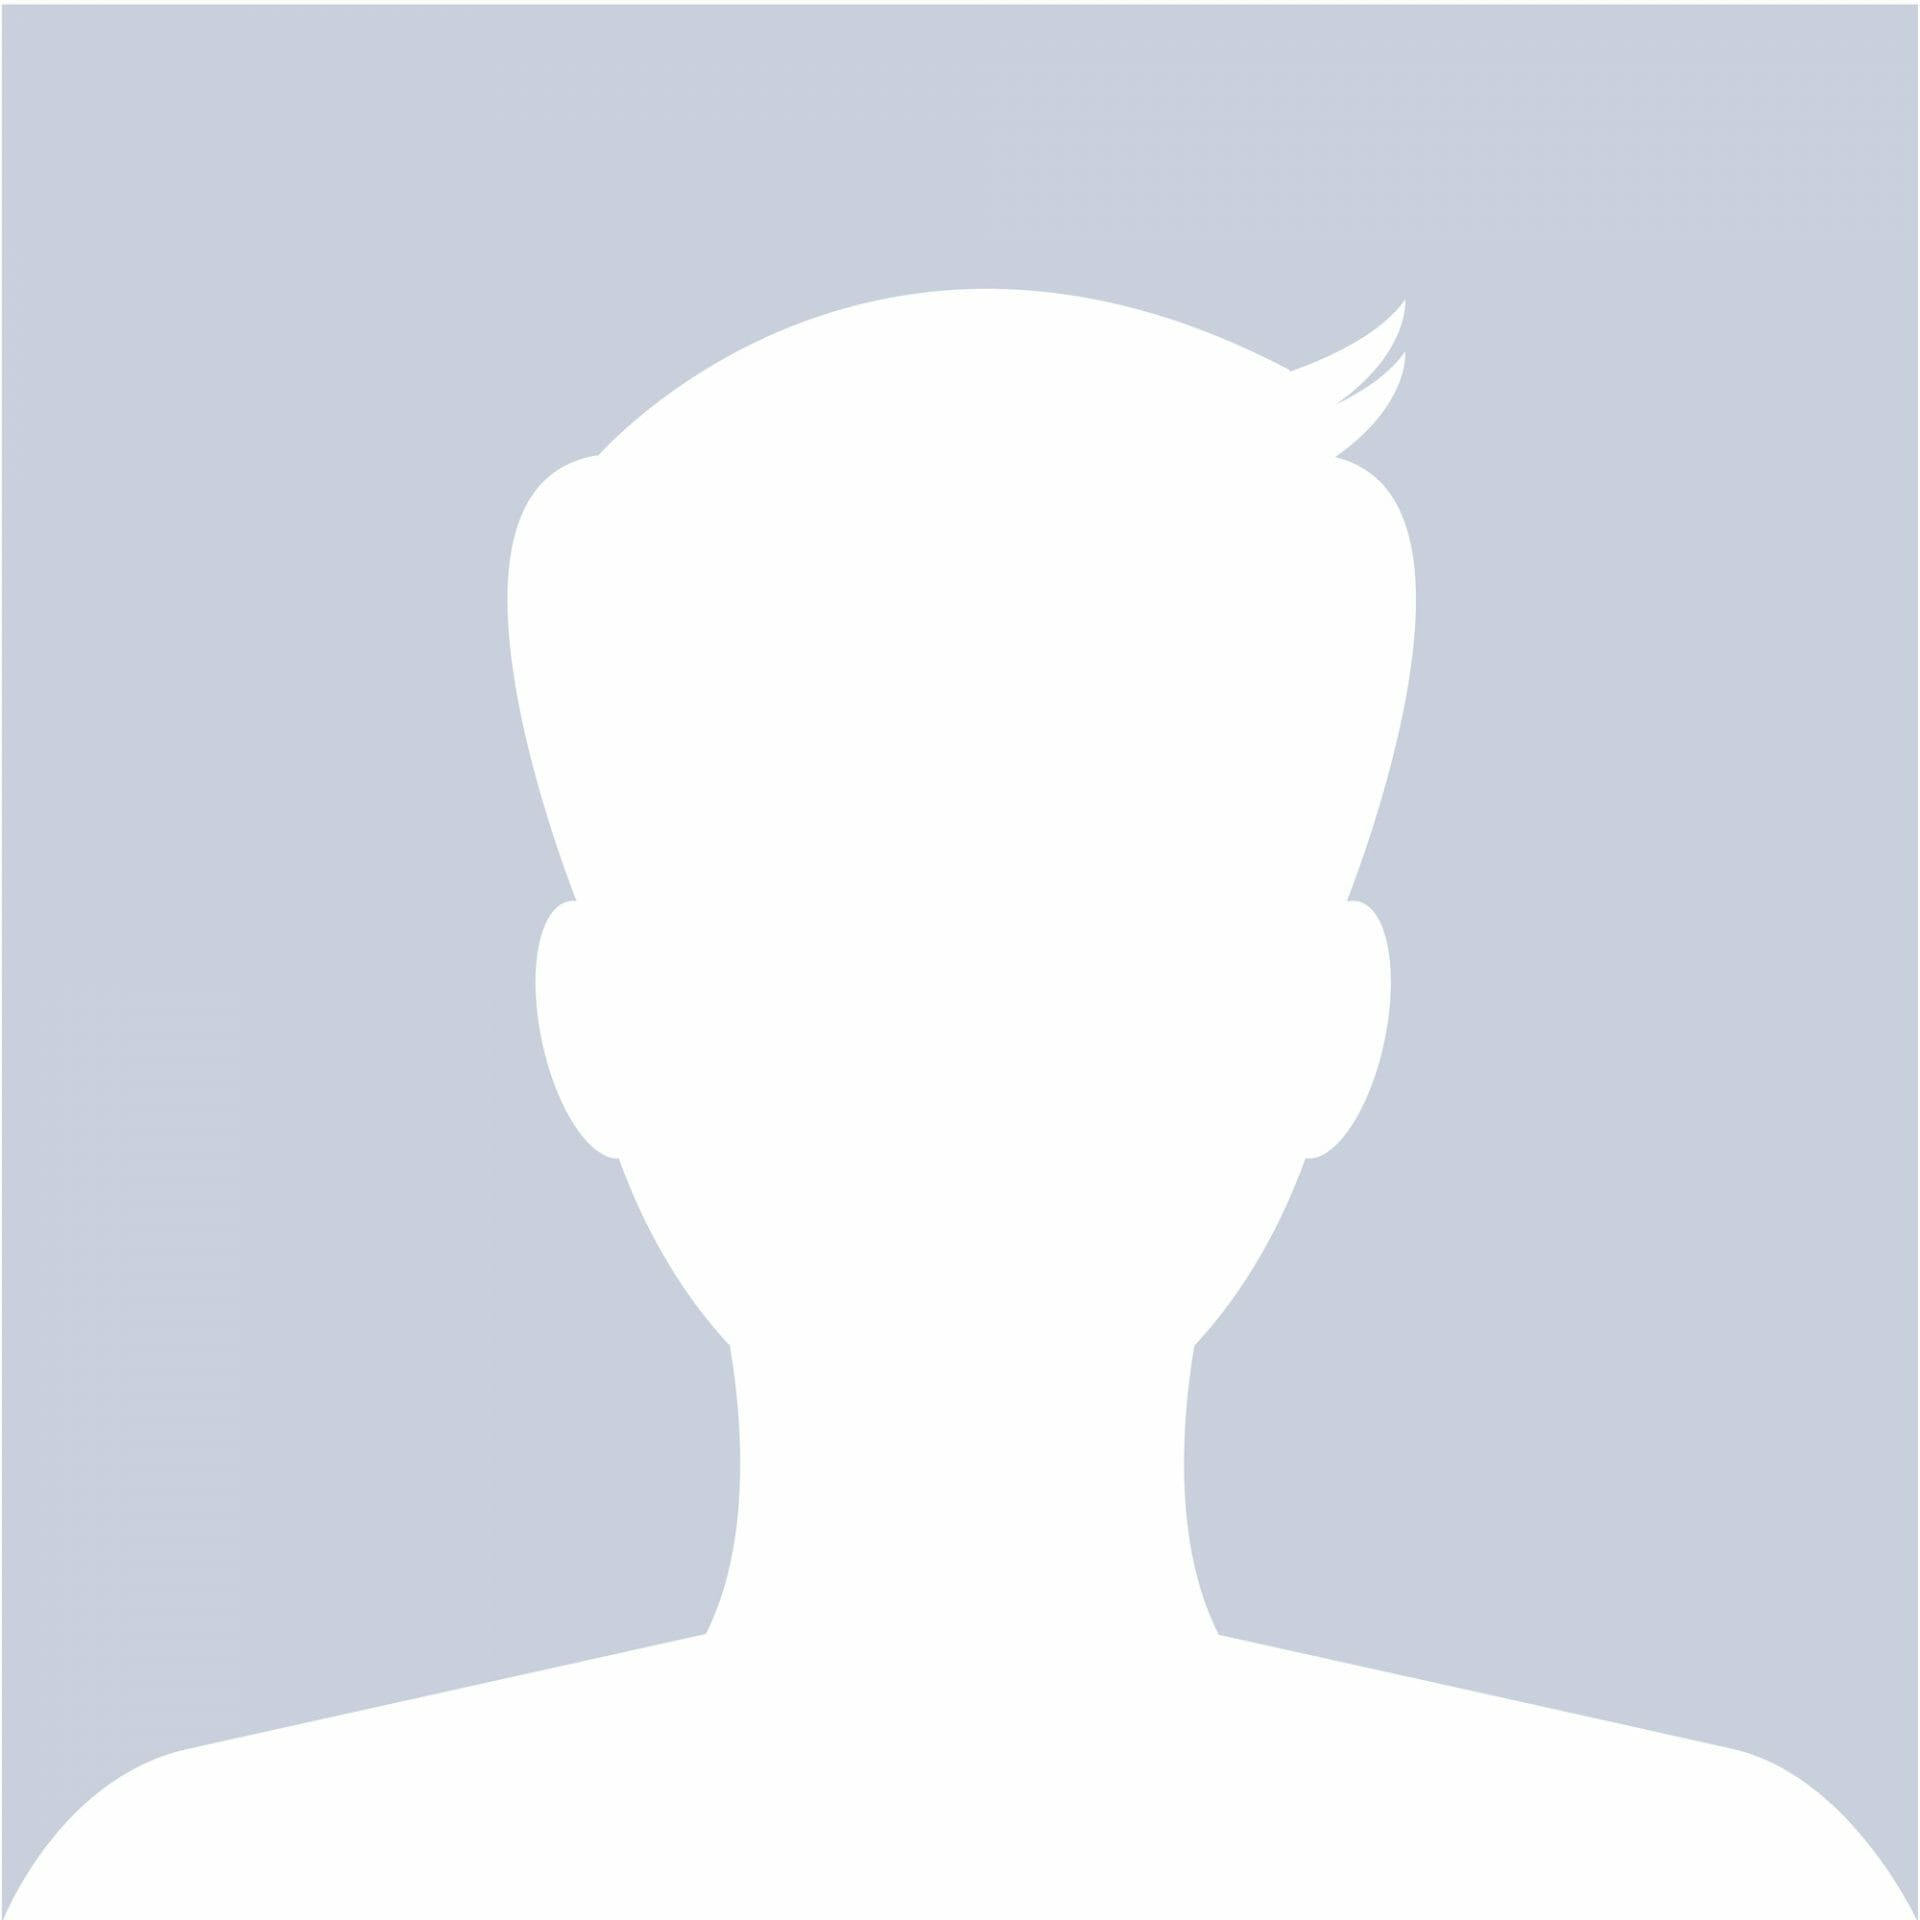 Silhouette of a man's head and shoulders